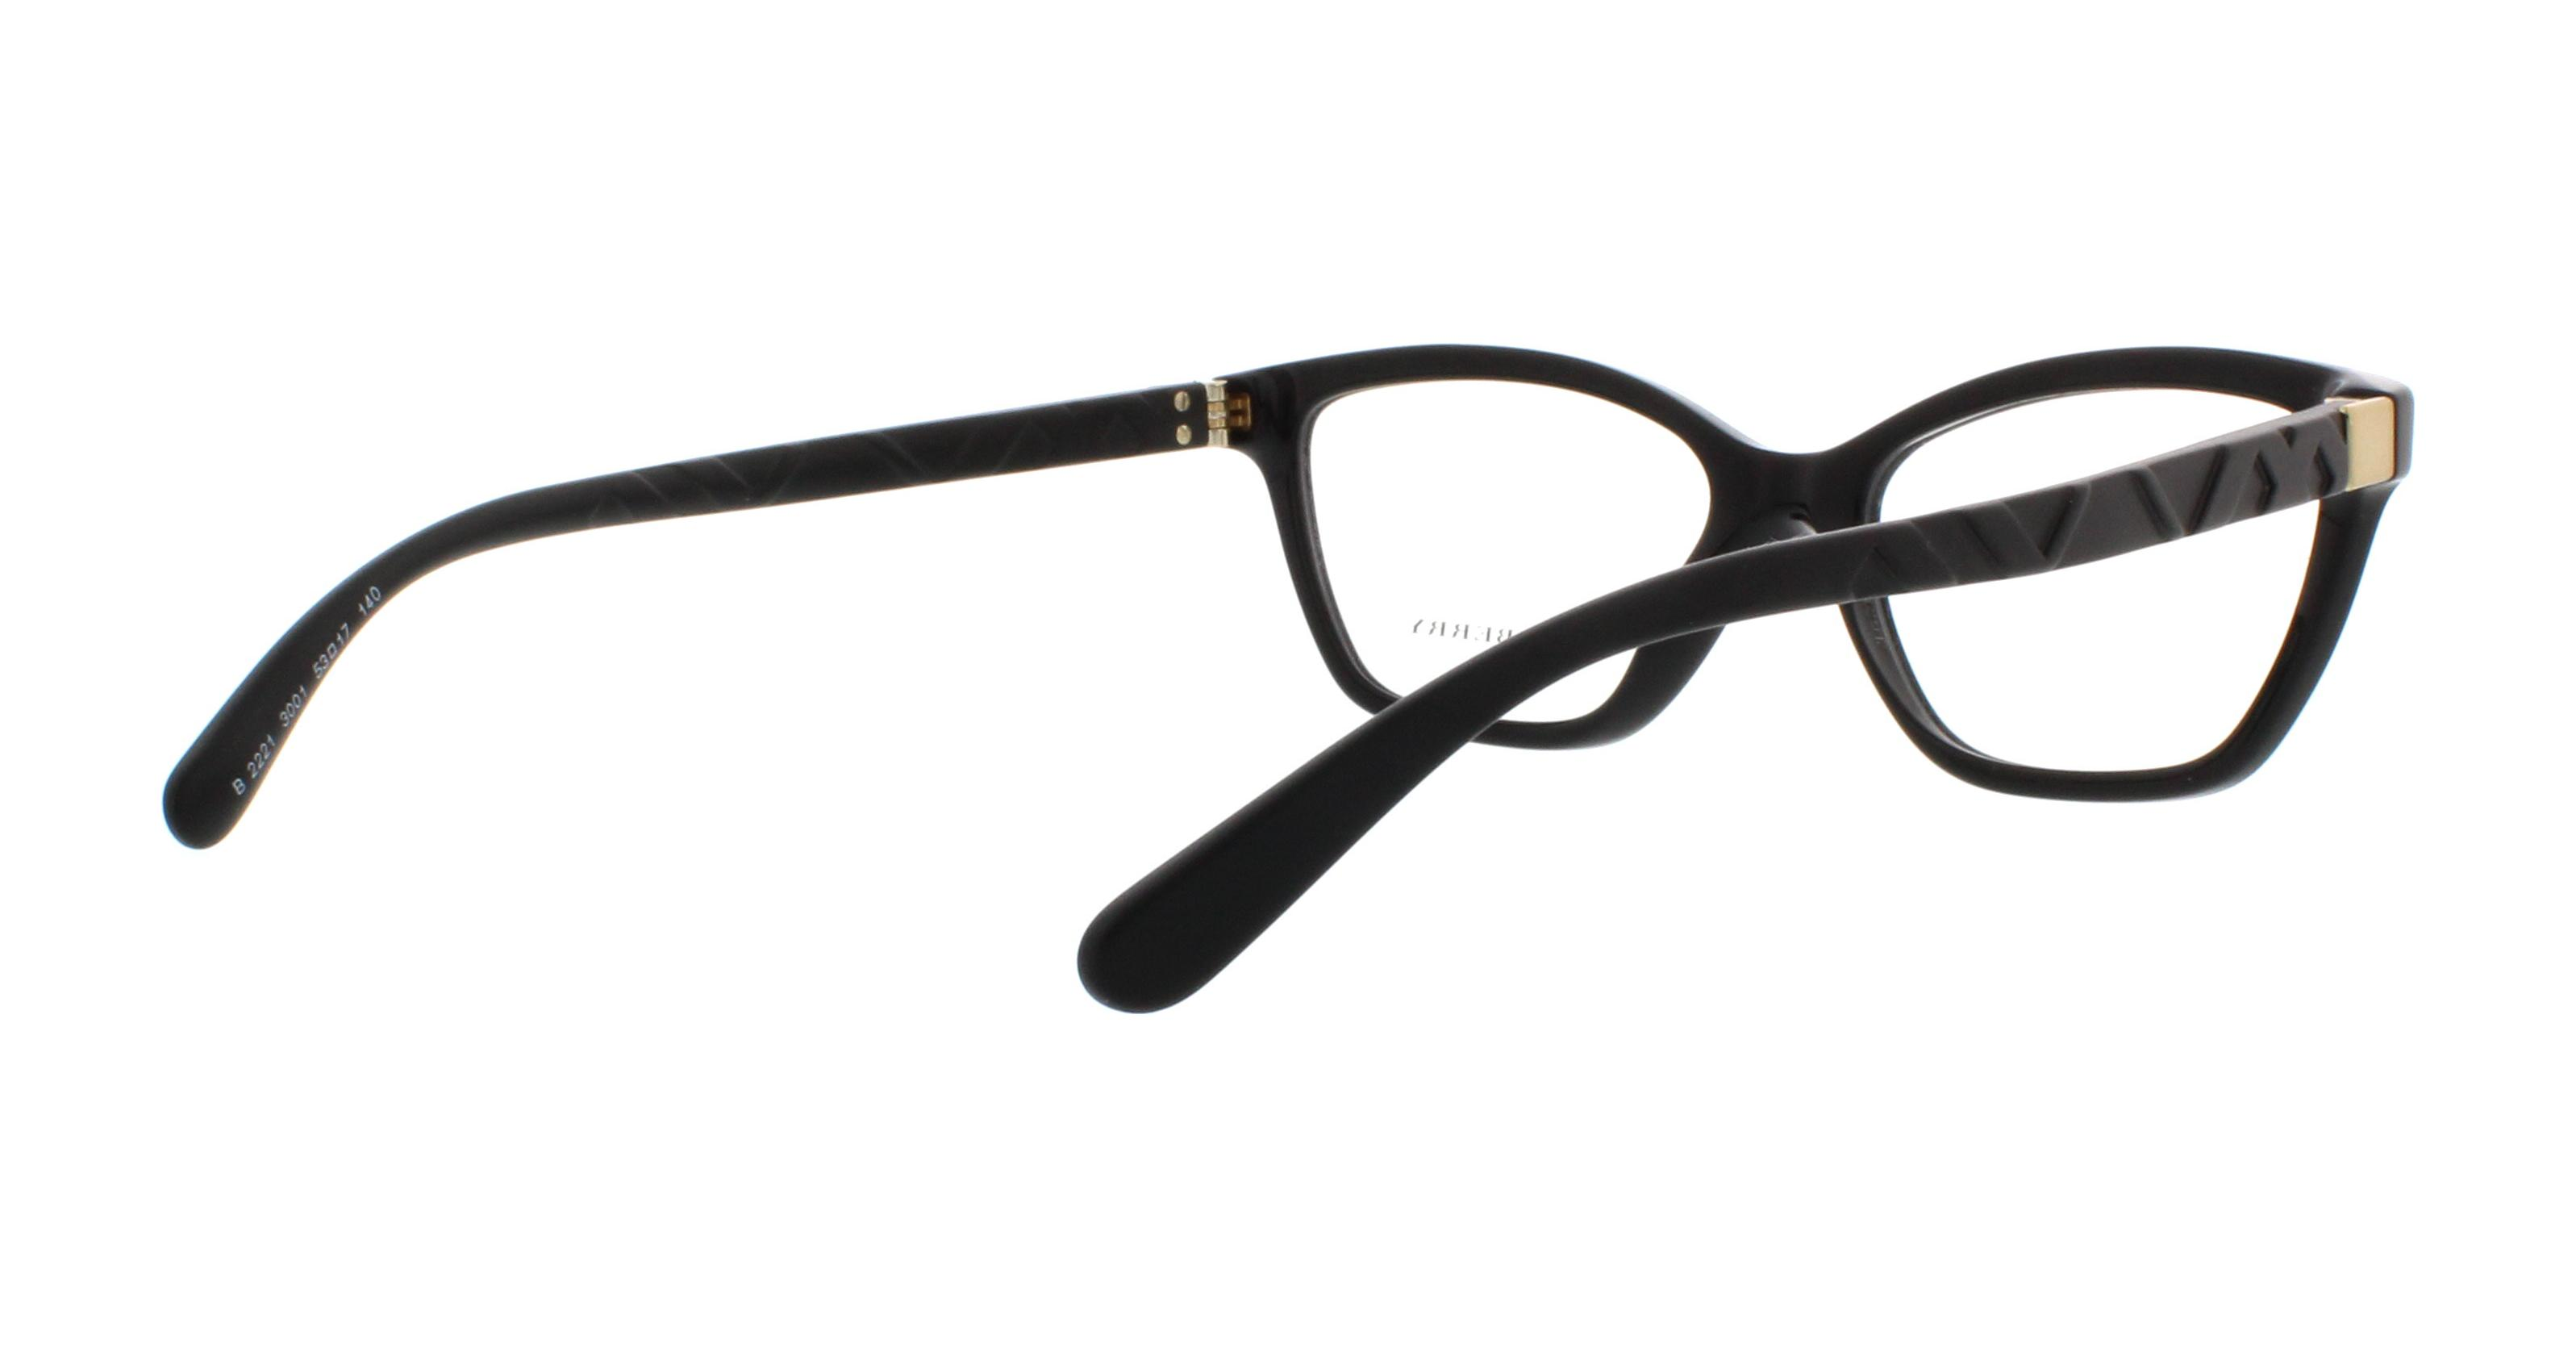 c592d4e70bb Burberry Eye Glasses - Best Glasses Cnapracticetesting.Com 2018